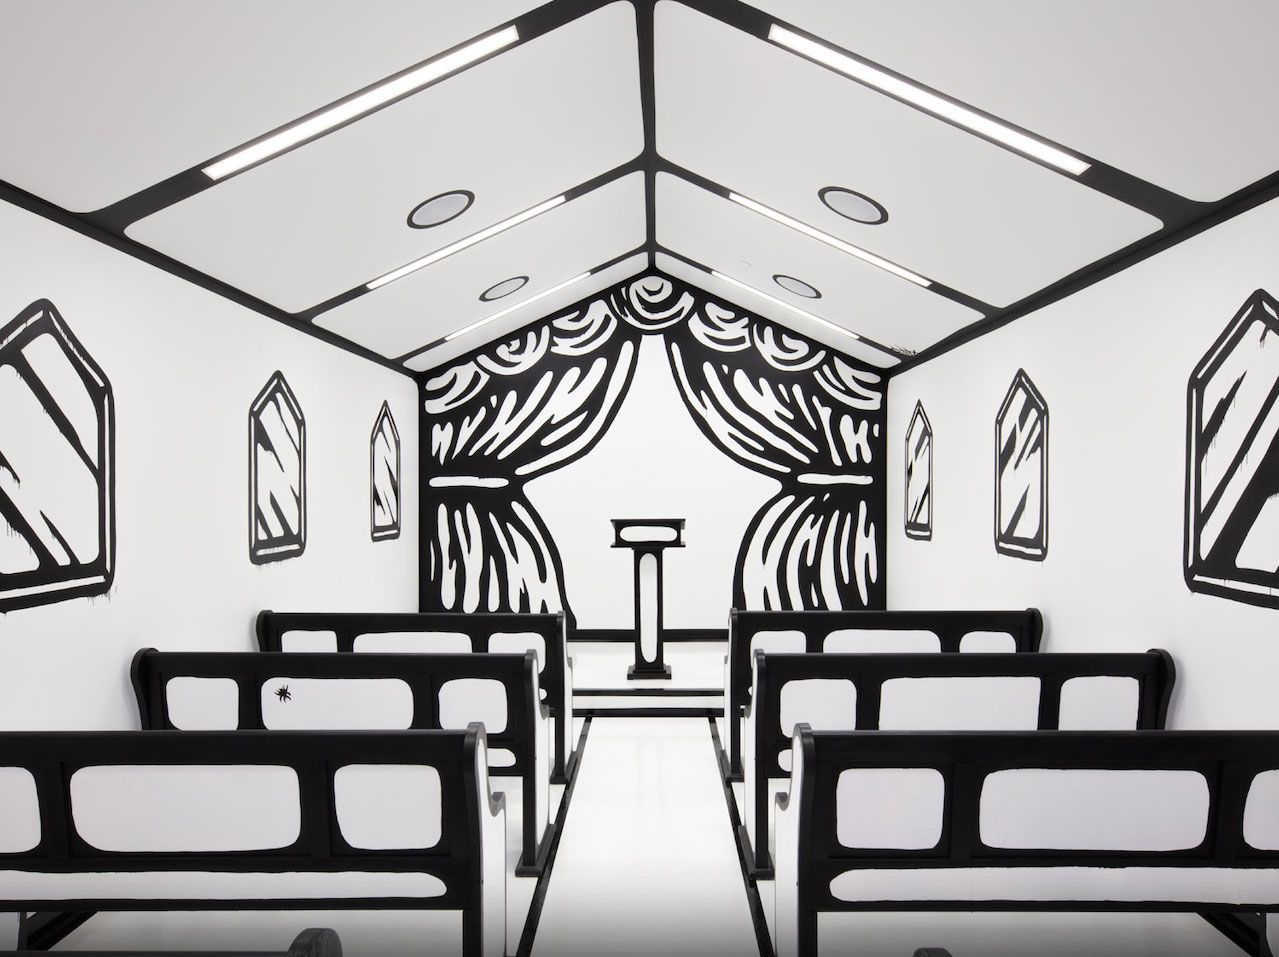 Black-and-white cartoon chapel